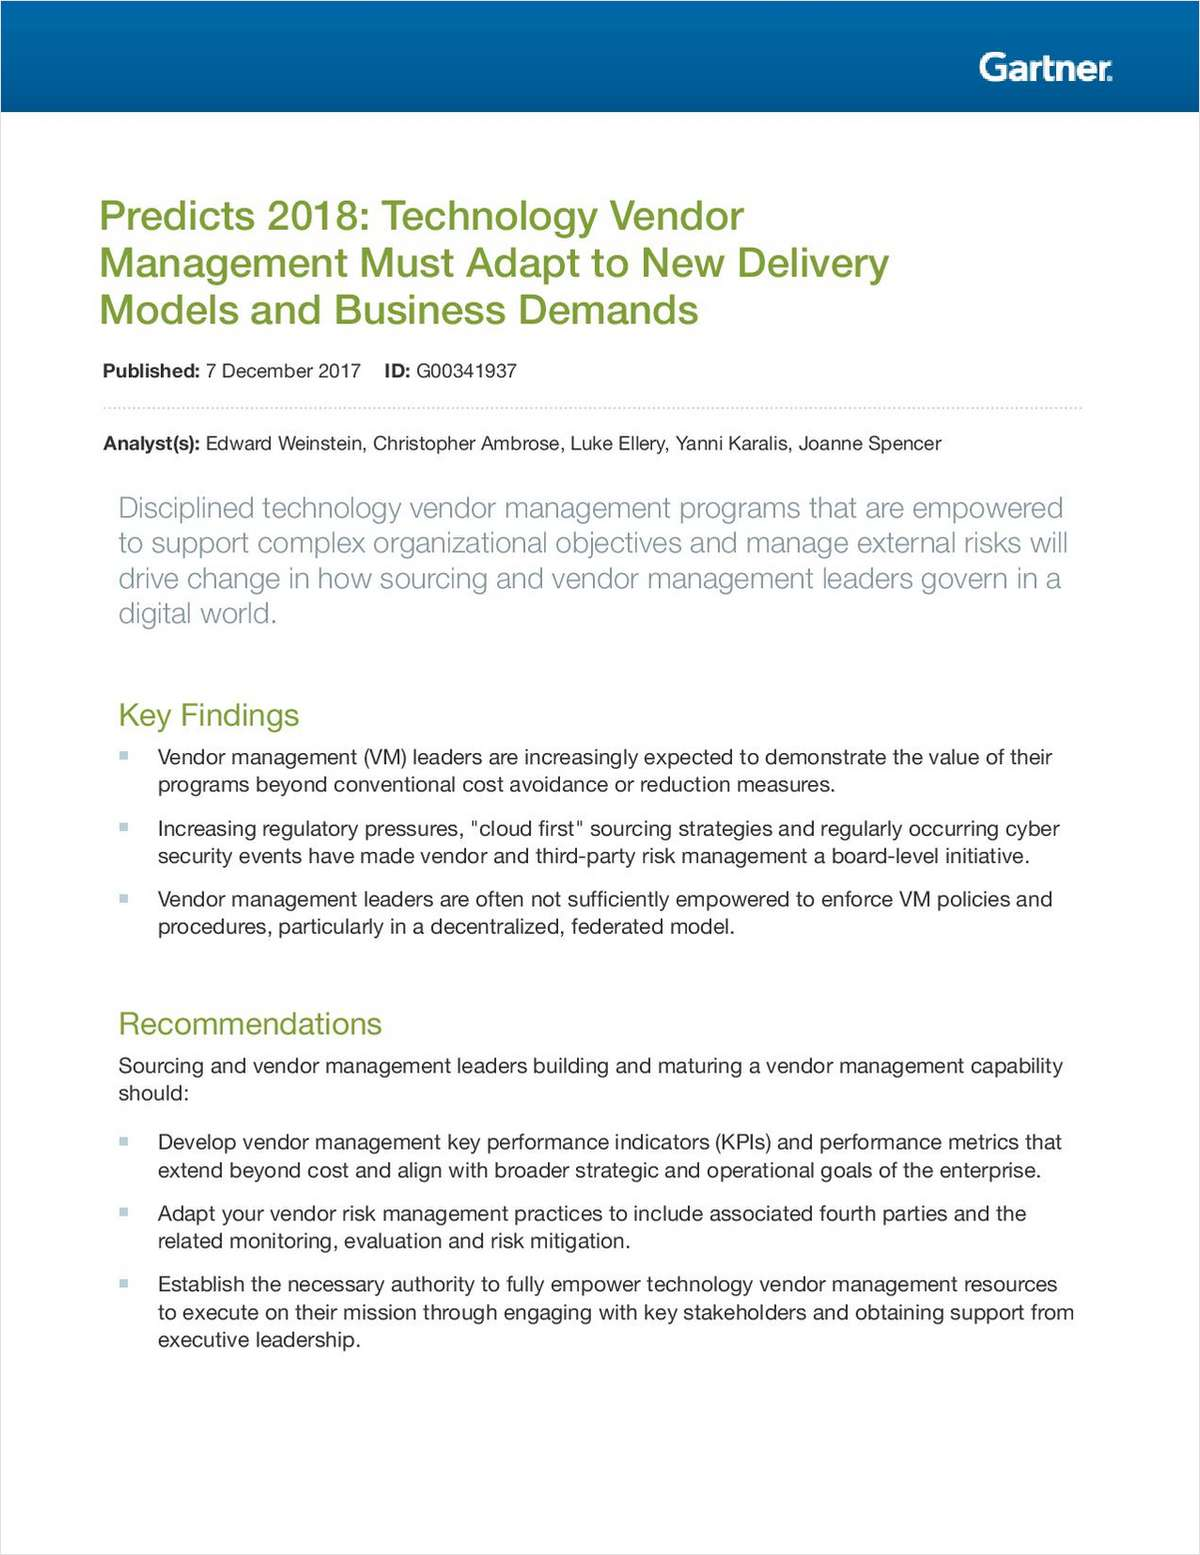 Predicts 2018: Technology Vendor Management Must Adapt to New Delivery Models and Business Demands